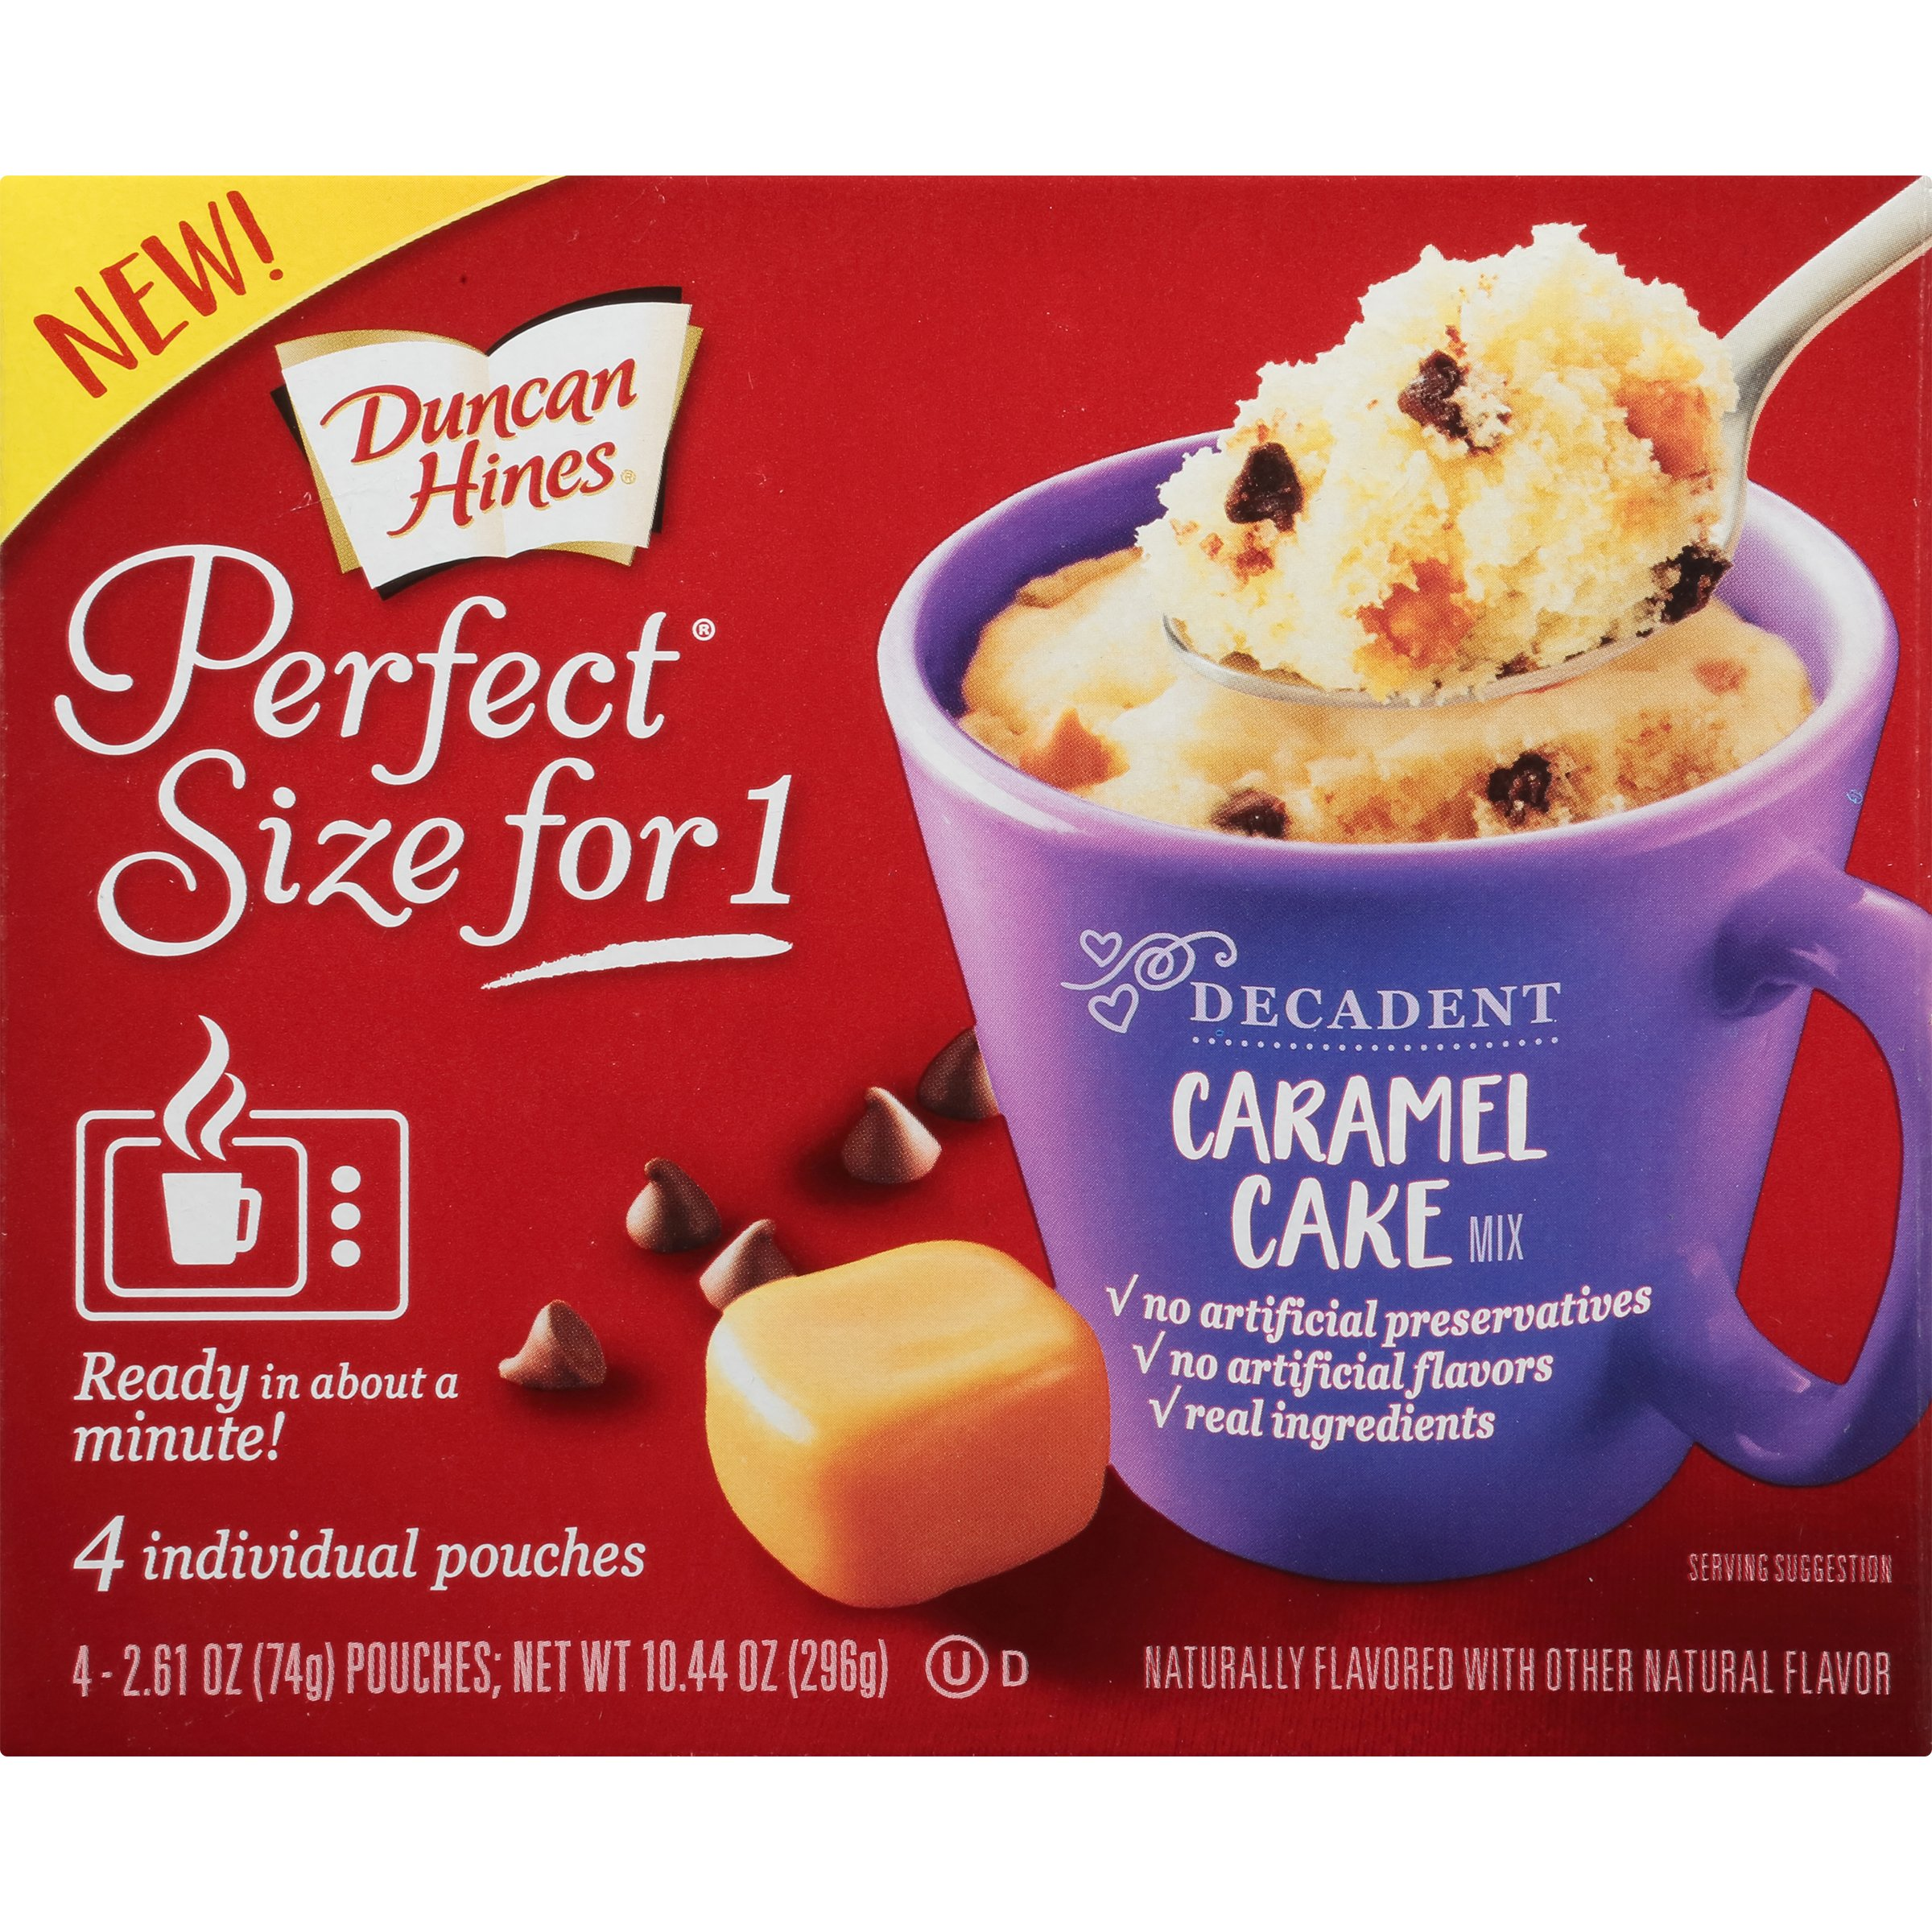 Duncan Hines Perfect Size for 1 Mug Cake Mix, Ready in About a Minute, Caramel Cake, 4 individual pouches